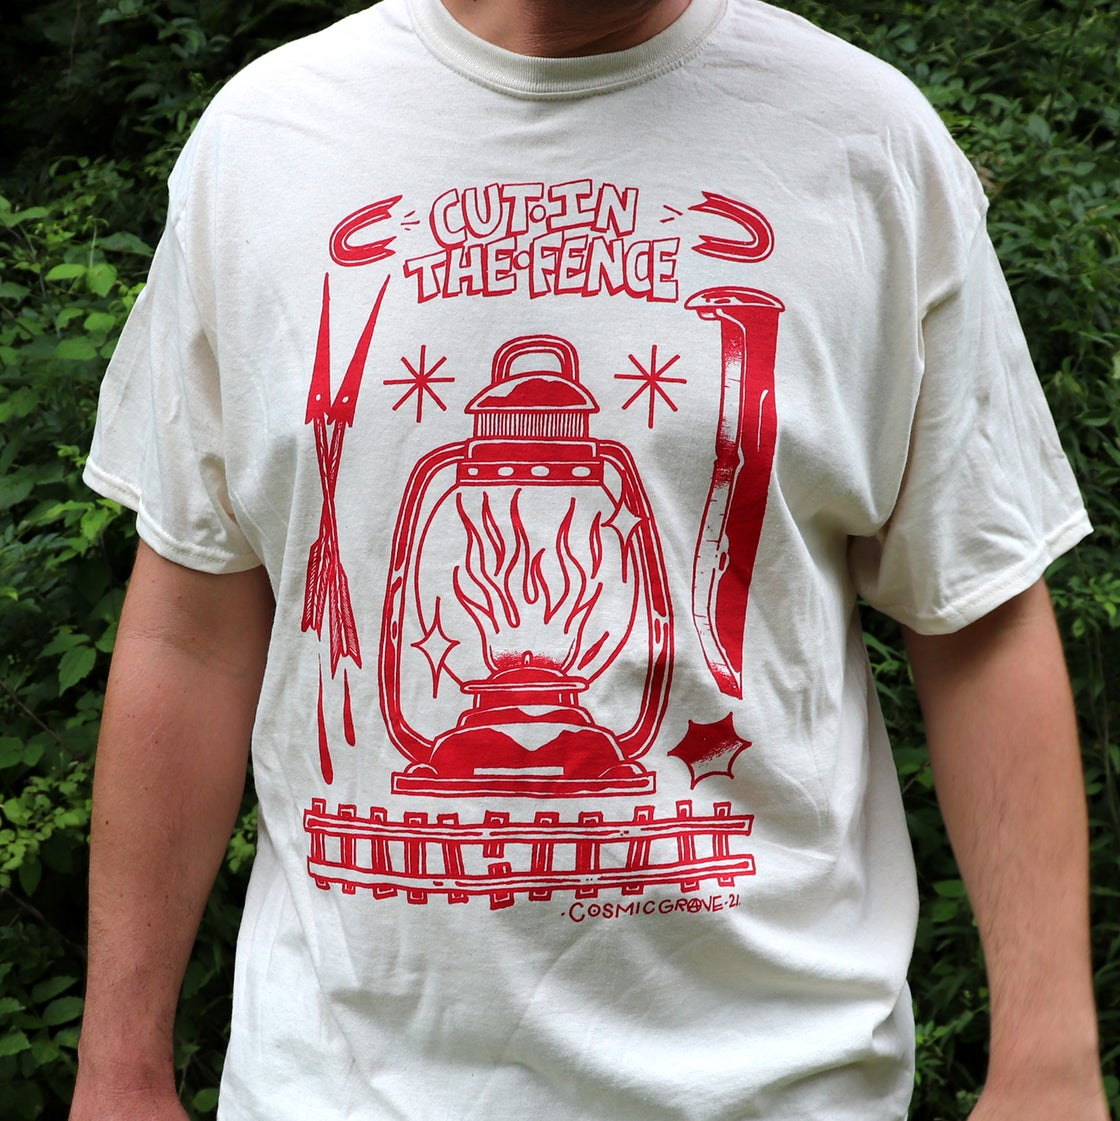 Image of LANTERN SHIRT - COSMIC GRAVE x CUT IN THE FENCE